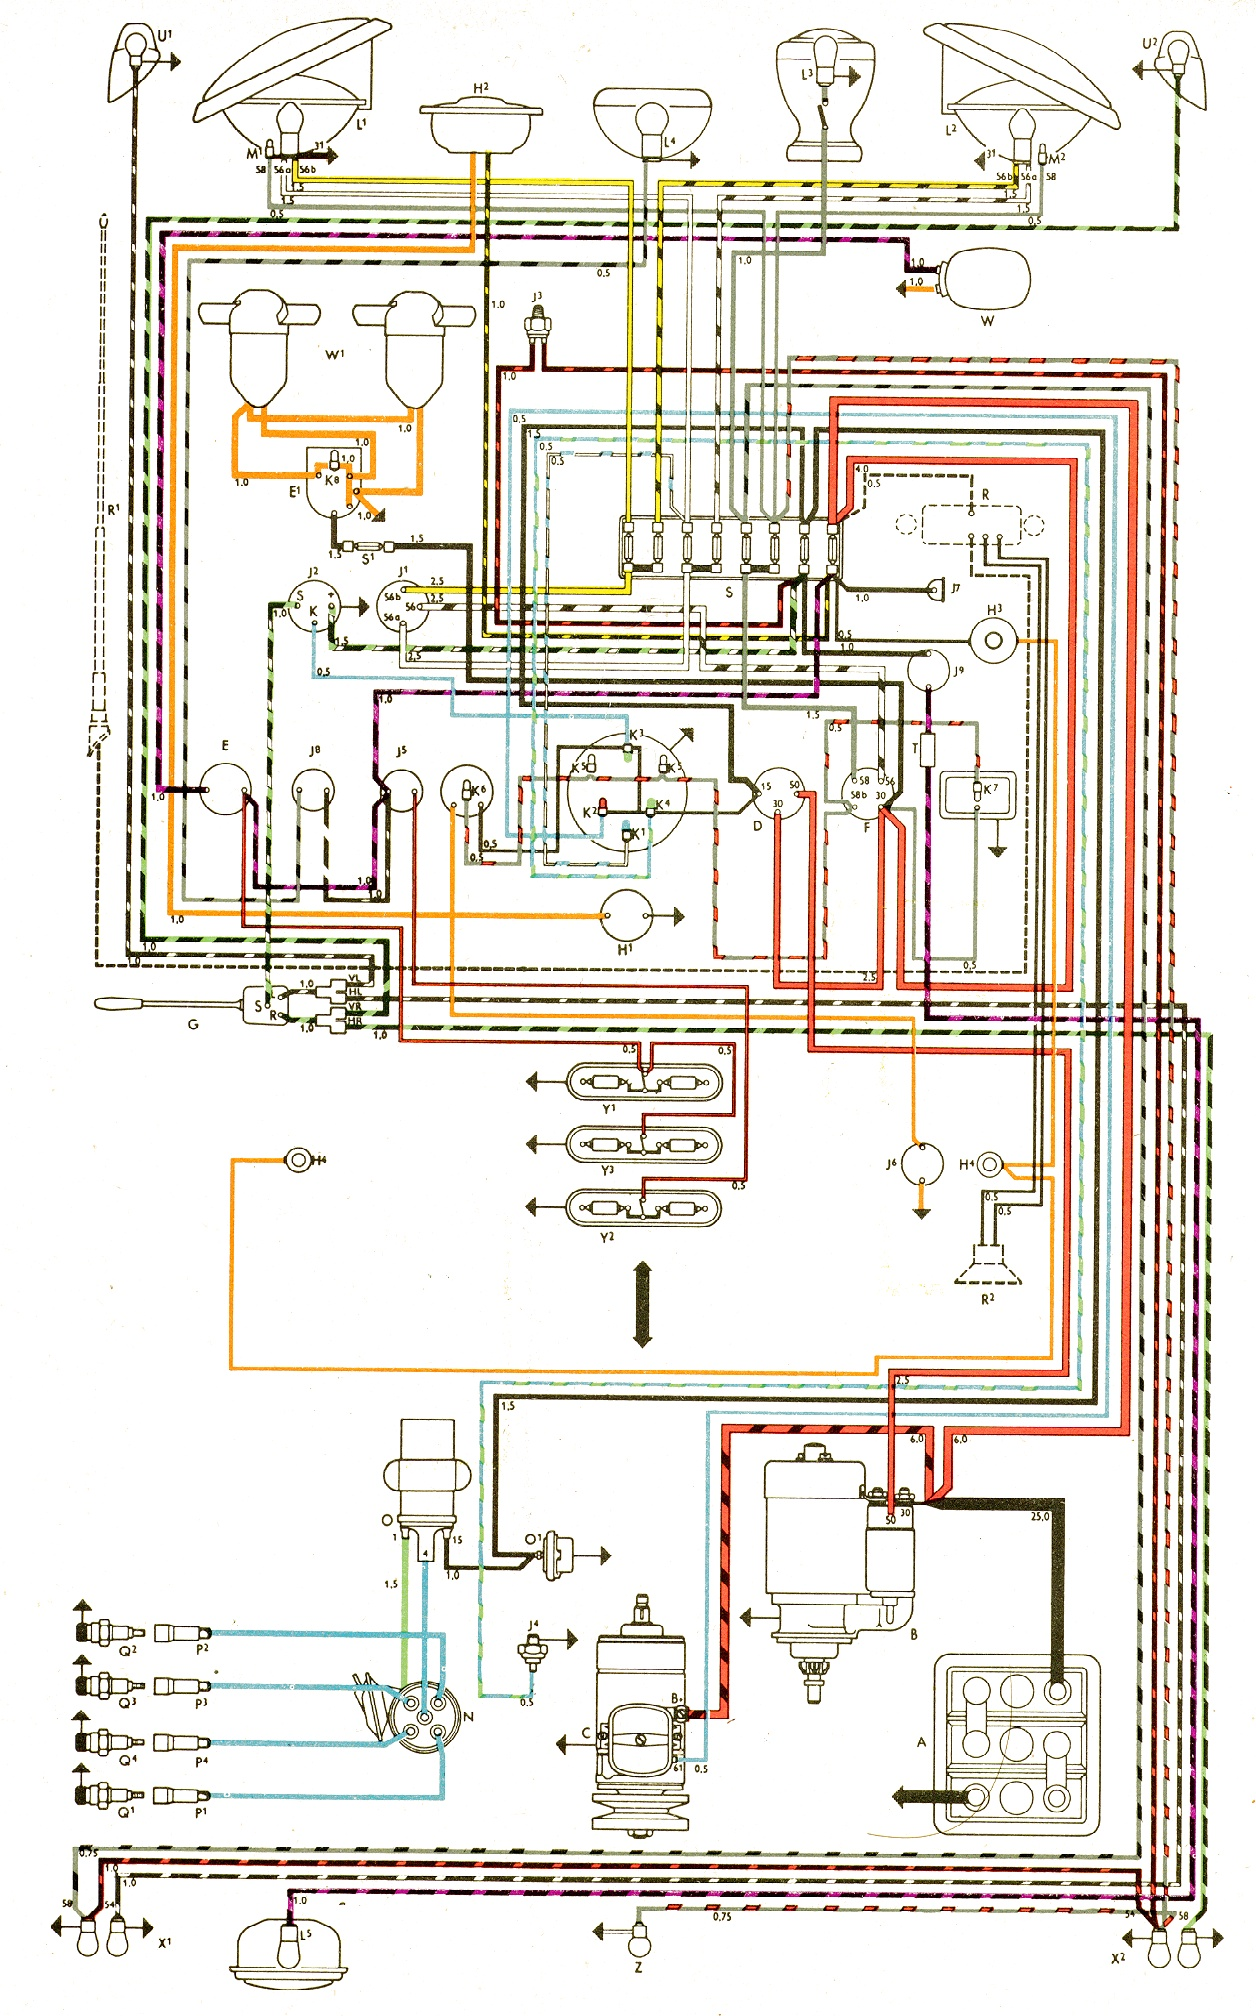 bus 62 bus wiring diagram vw wiring harness diagram \u2022 wiring diagrams j glaval bus wiring diagram at honlapkeszites.co